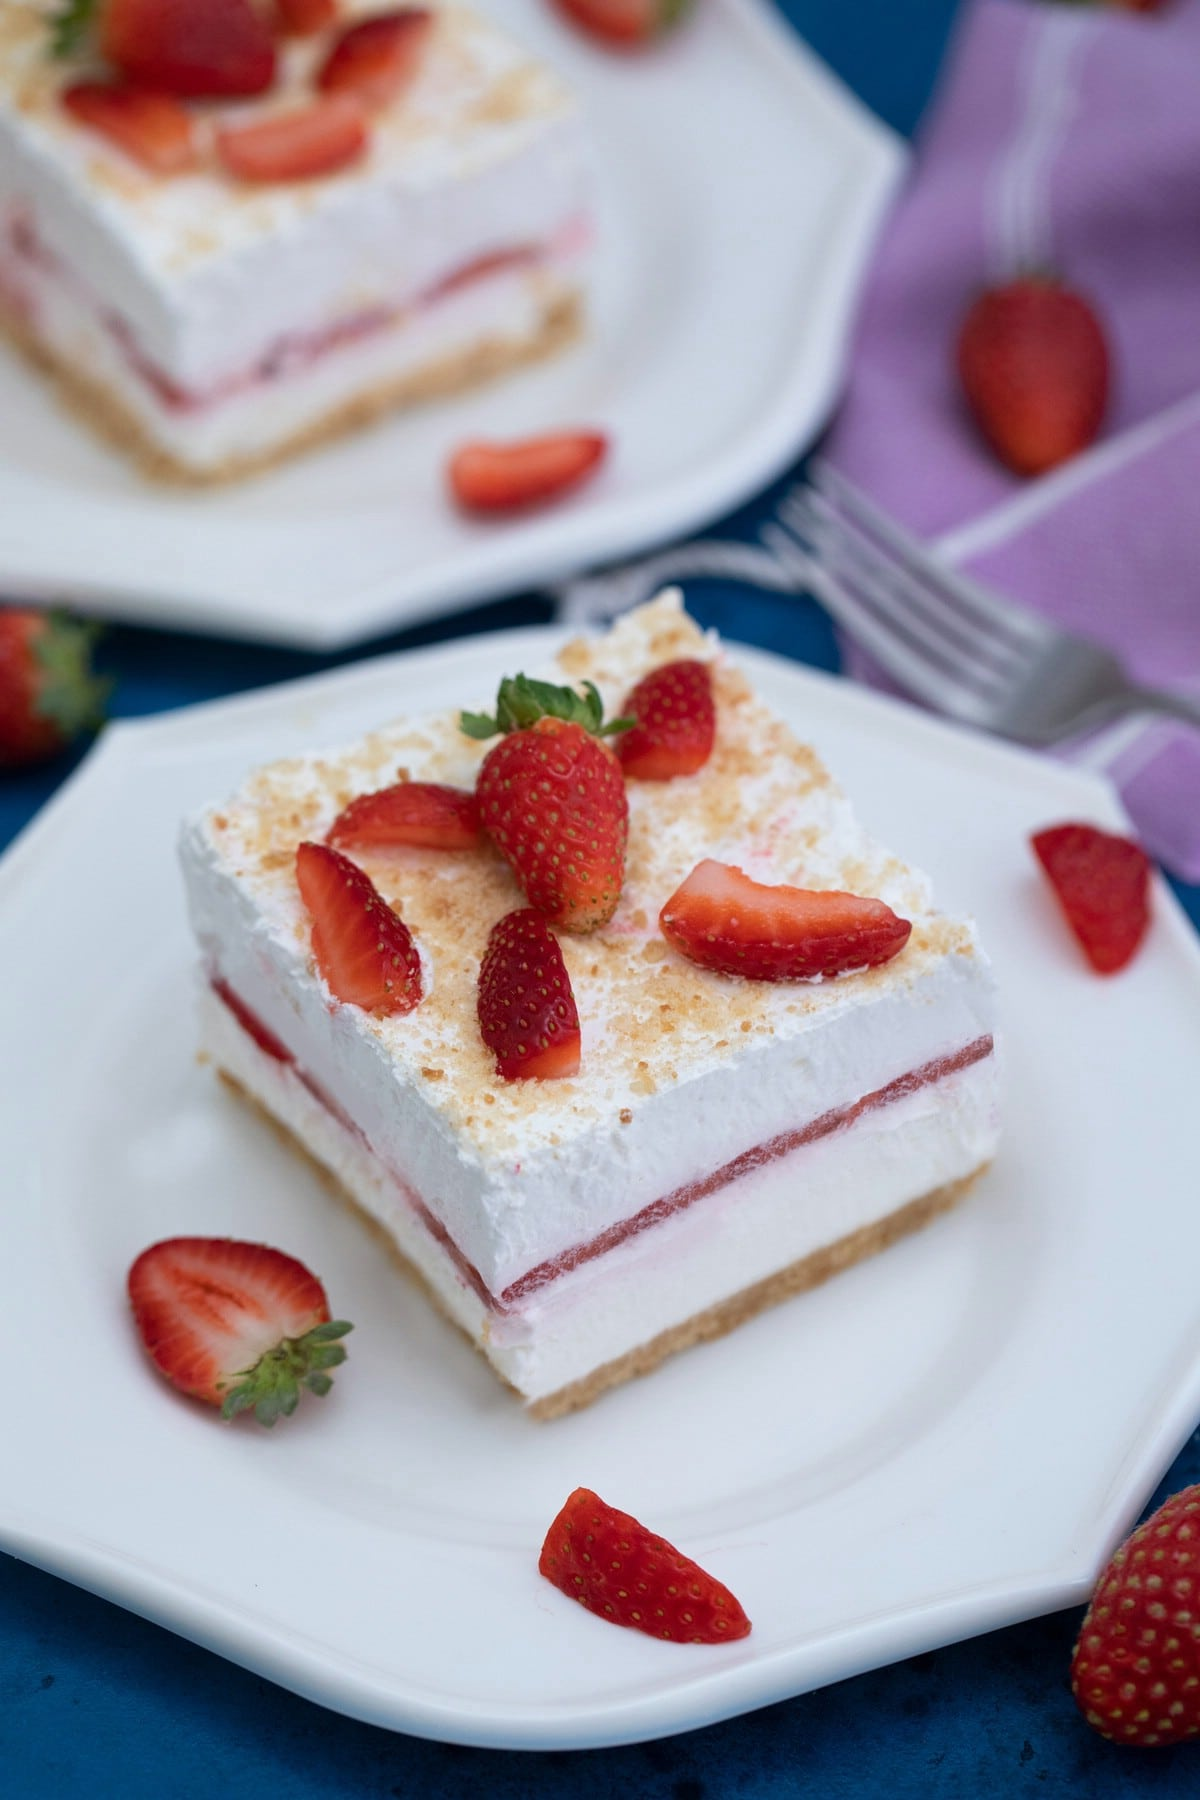 Square slice of strawberry dessert on white plate